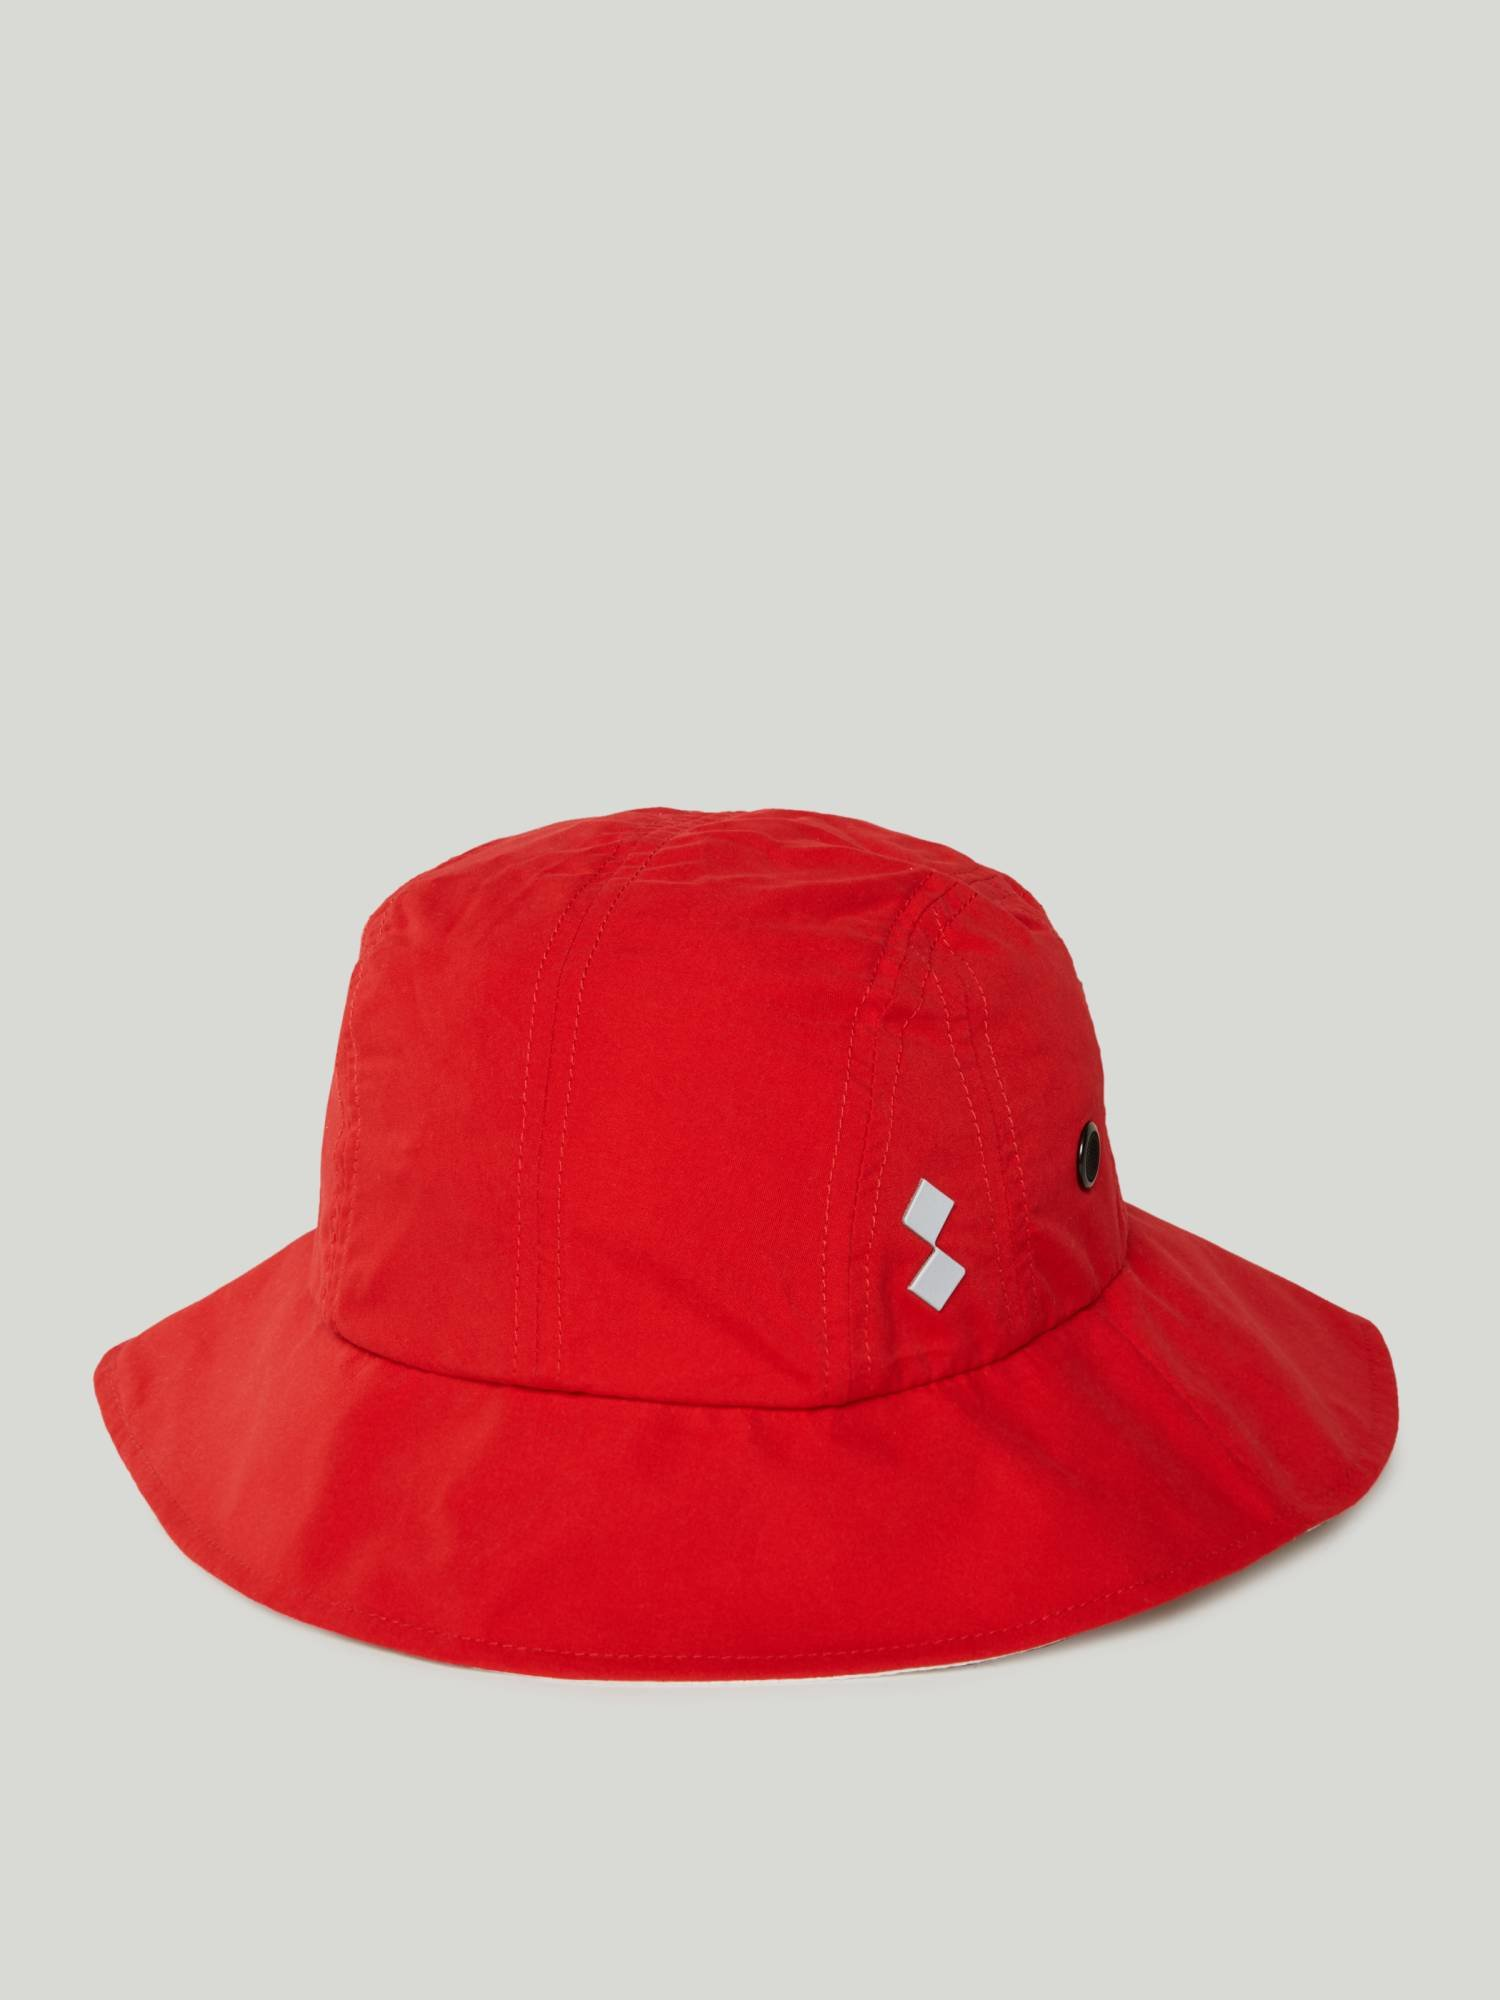 Hat A207 - Slam Red